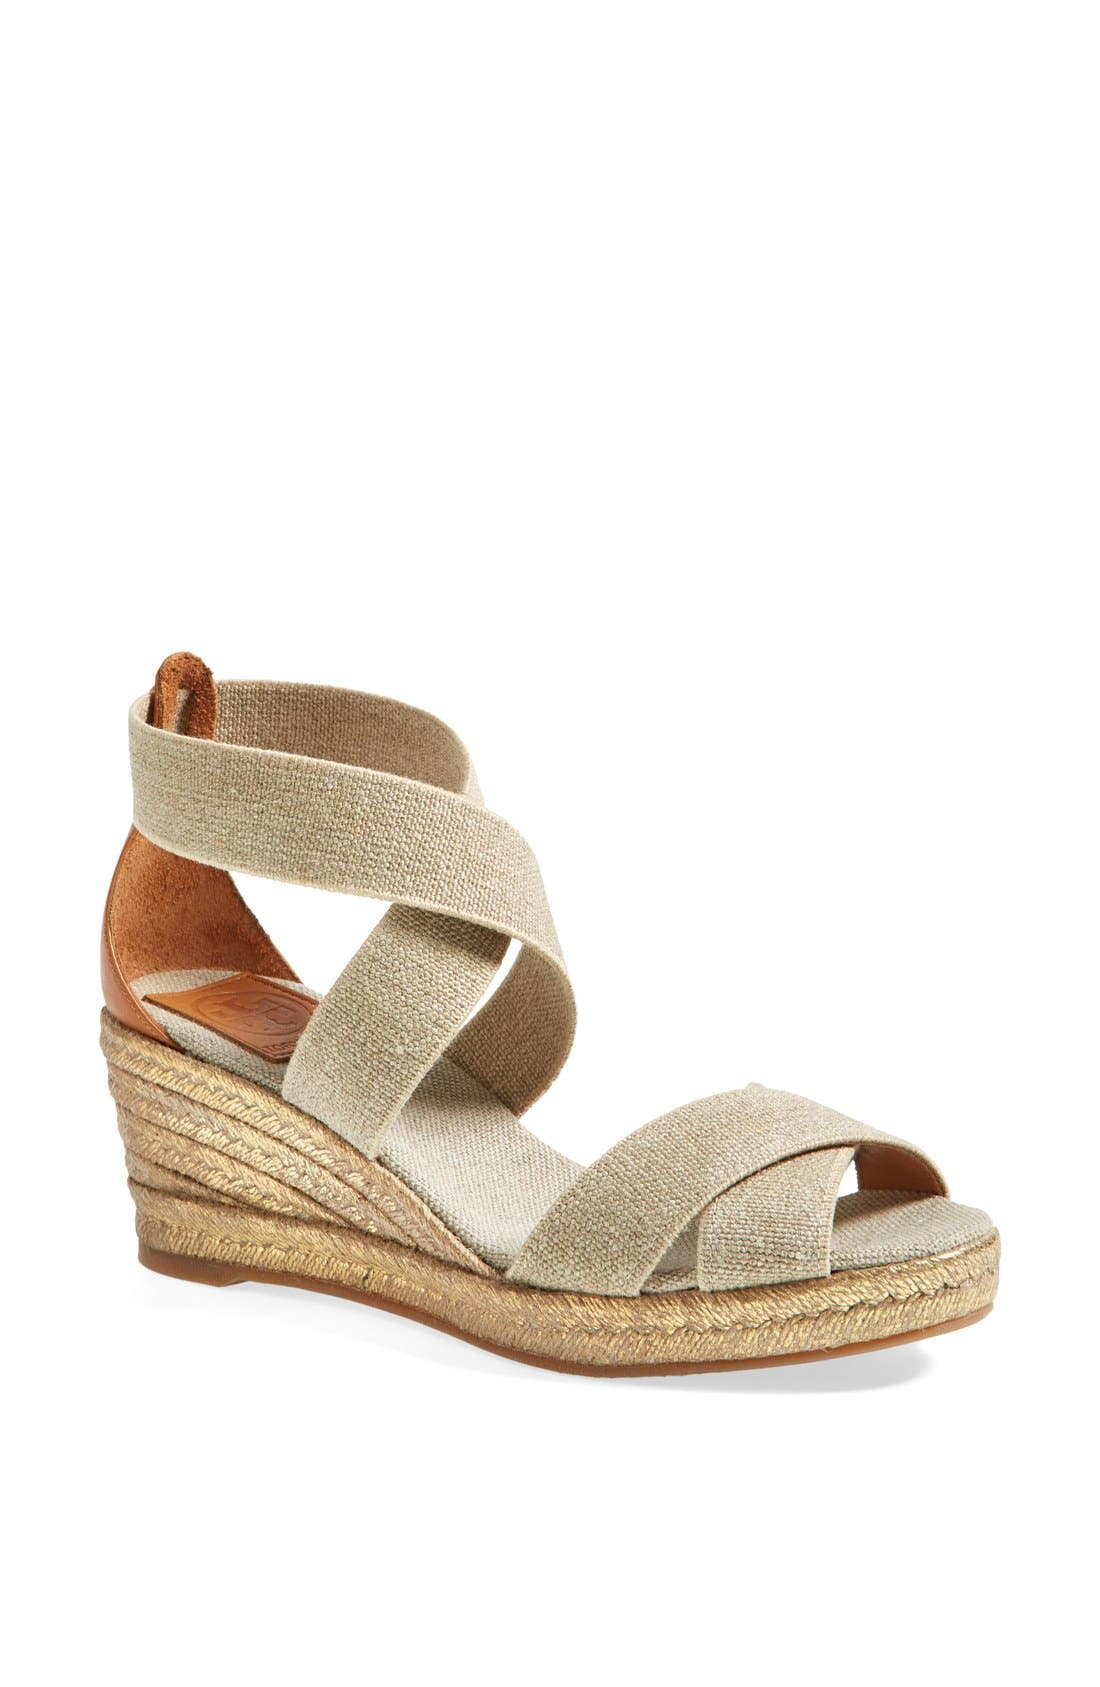 Alternate Image 1 Selected - Tory Burch 'Adonis' Sandal (Online Only)